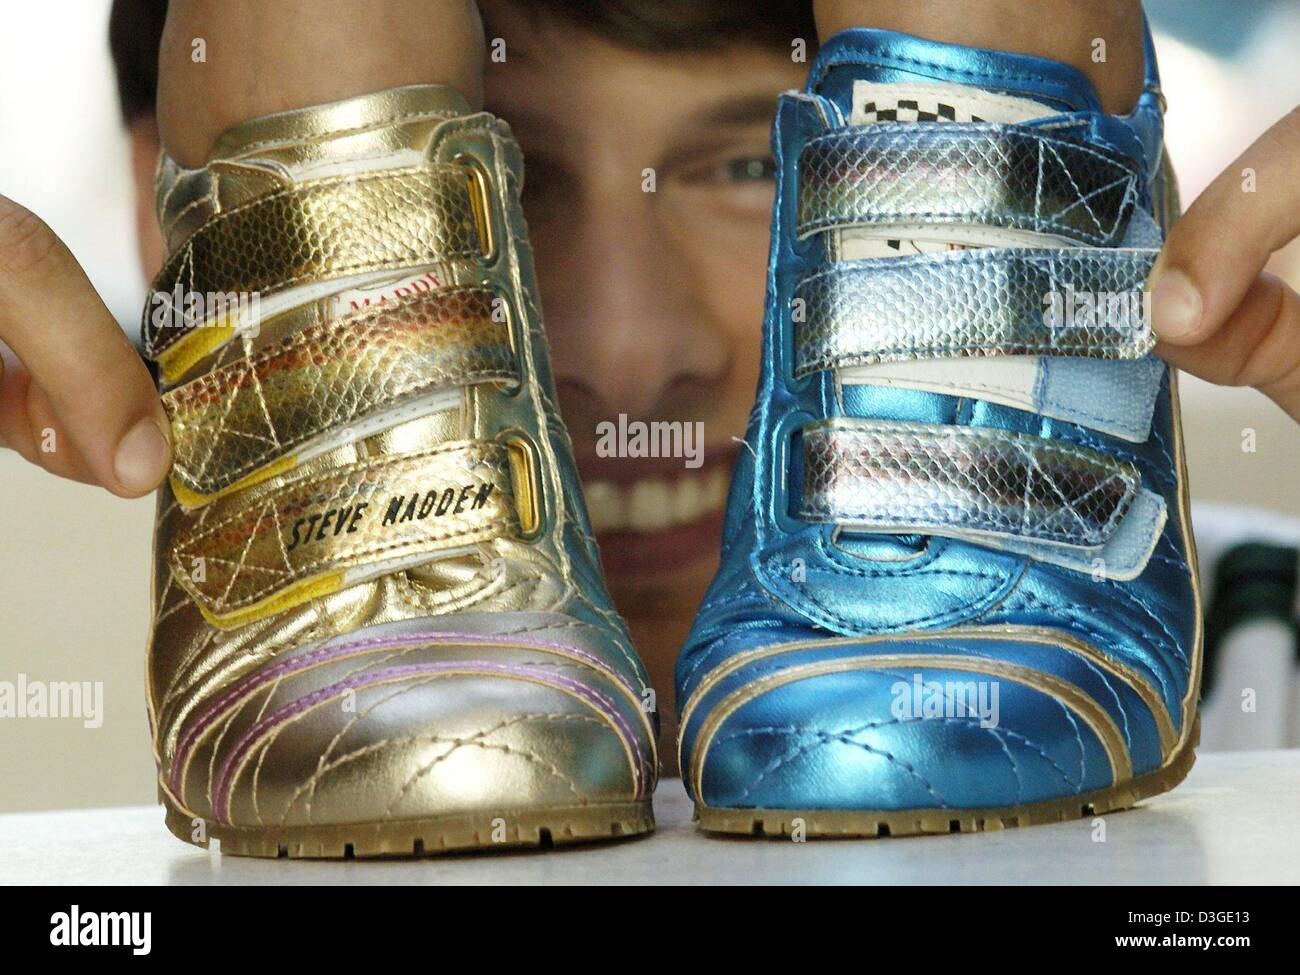 (dpa) - Joern is smiling as he opens the velcro fasteners of two flashy sneakers during a photocall at the GDS Sport - Stock Image